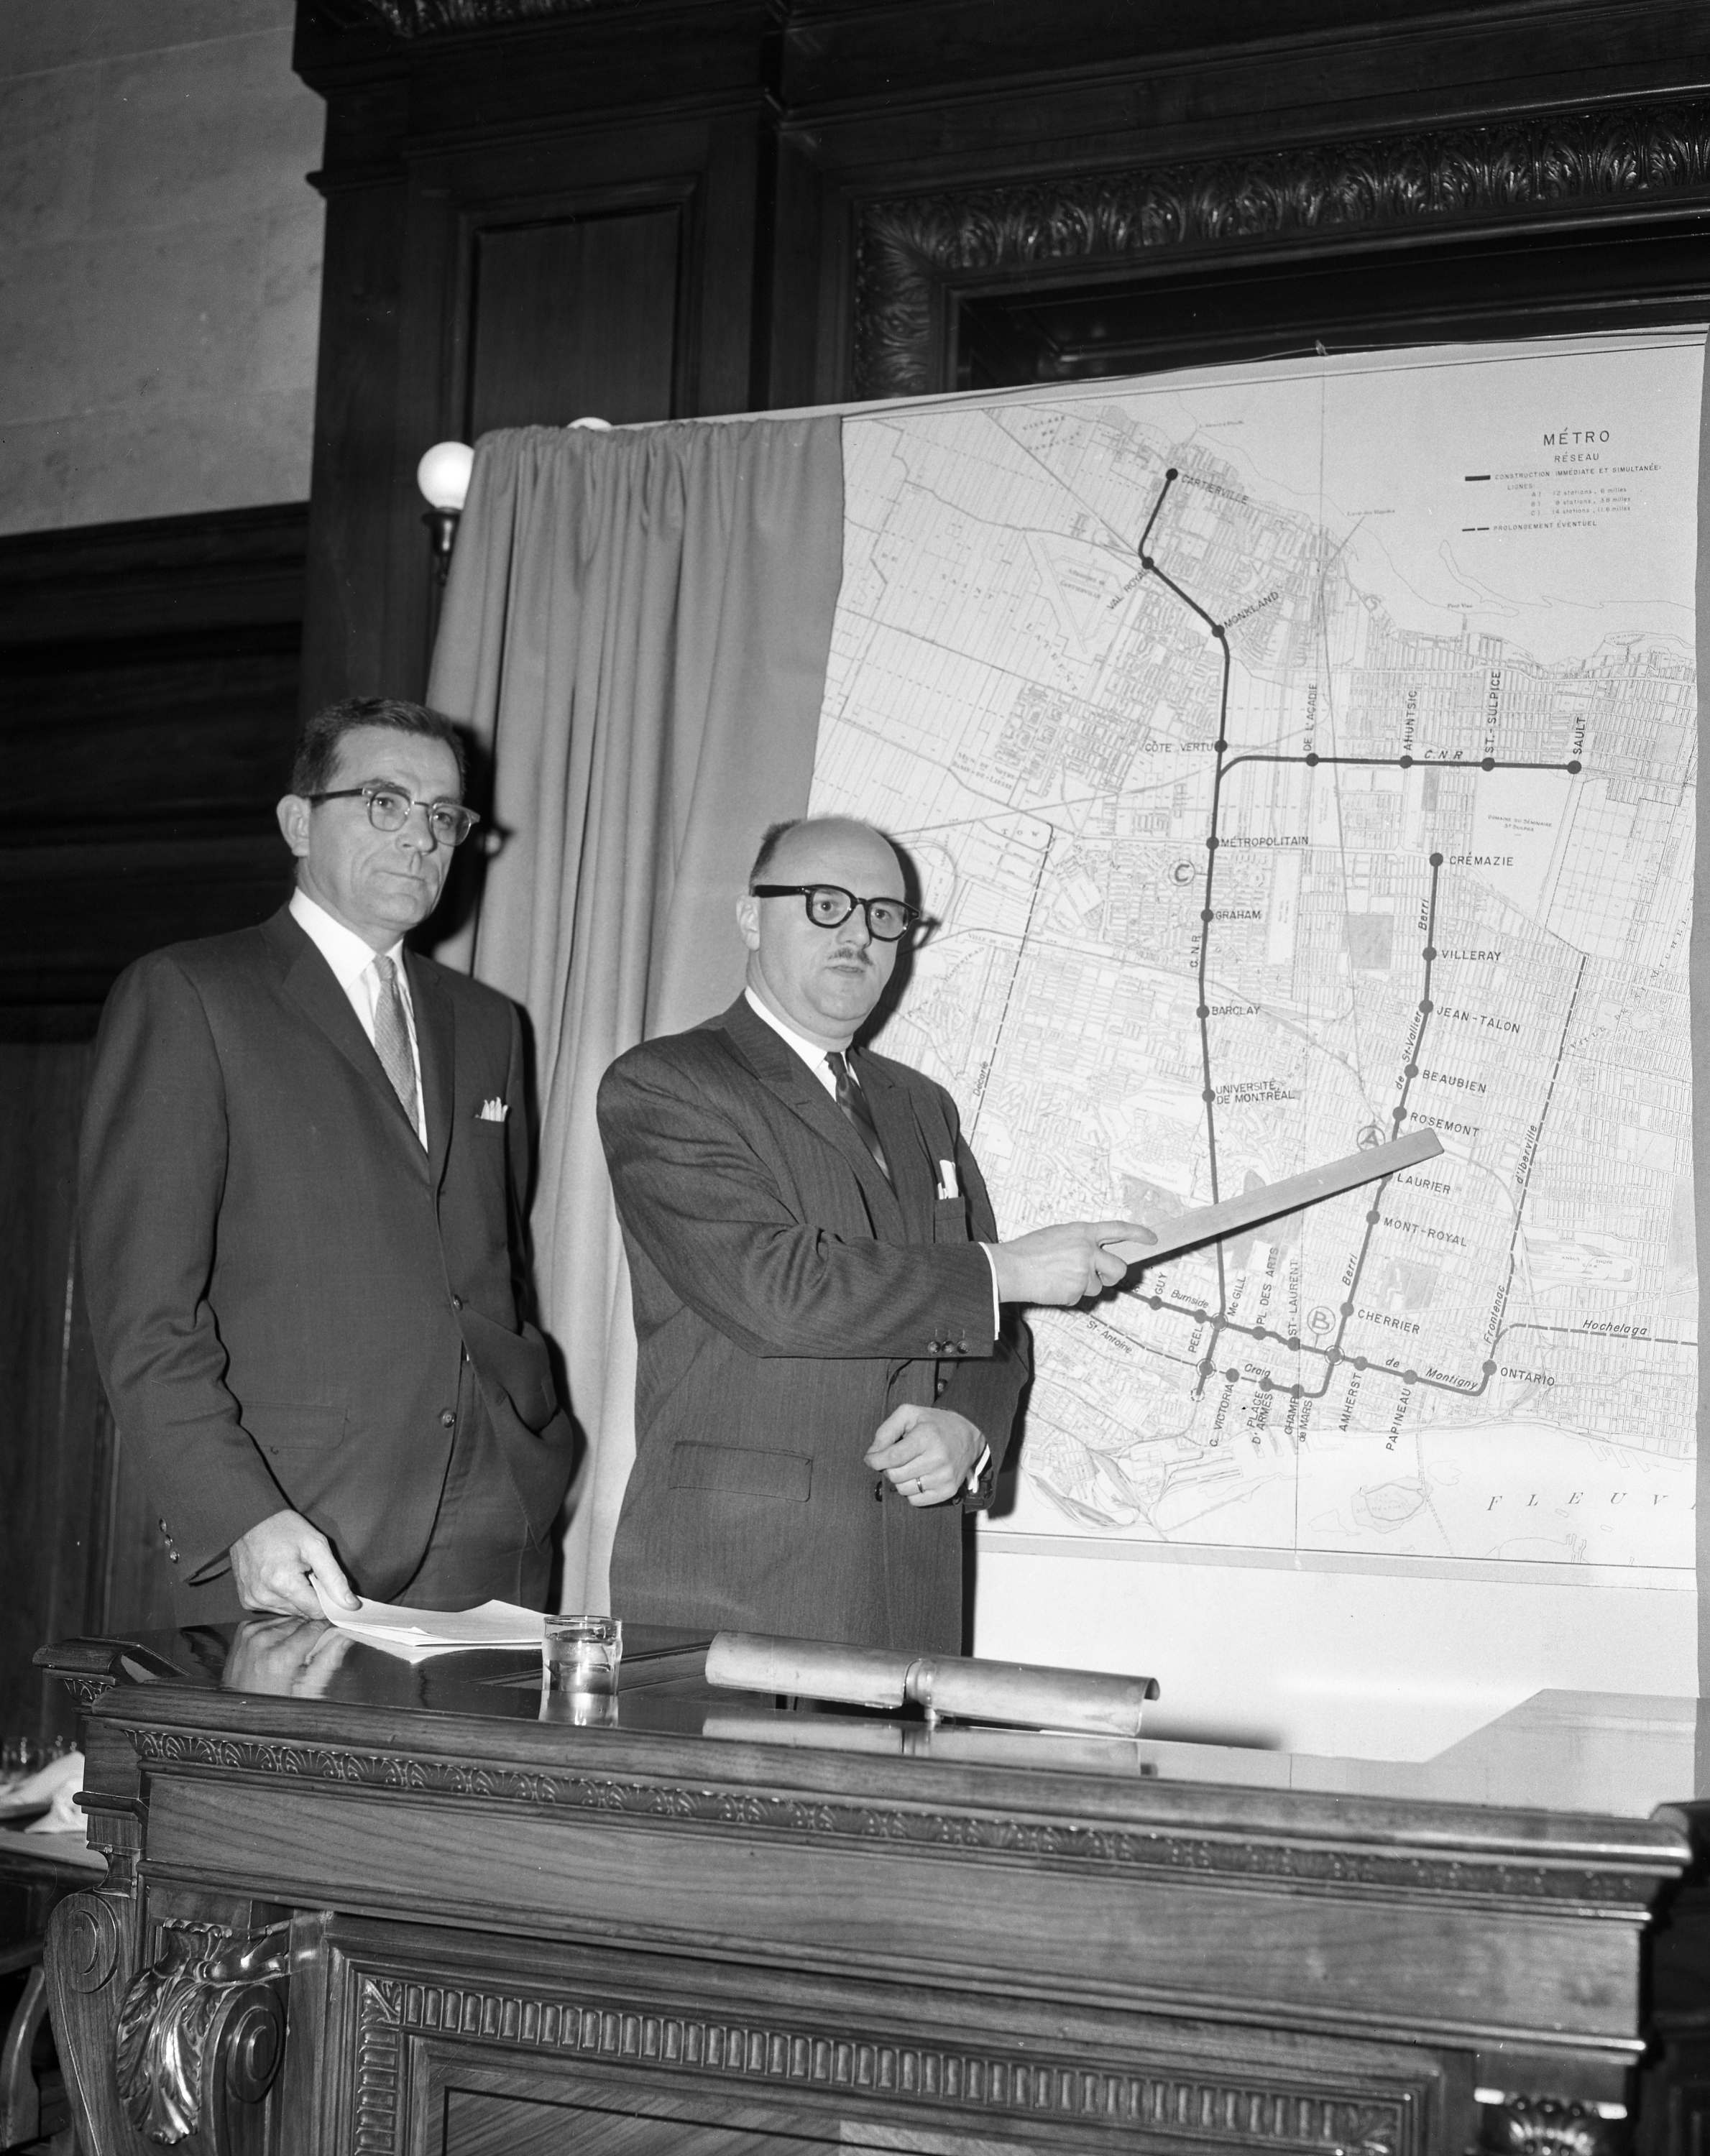 Unveiling of the proposed Montréal metro network, 1961